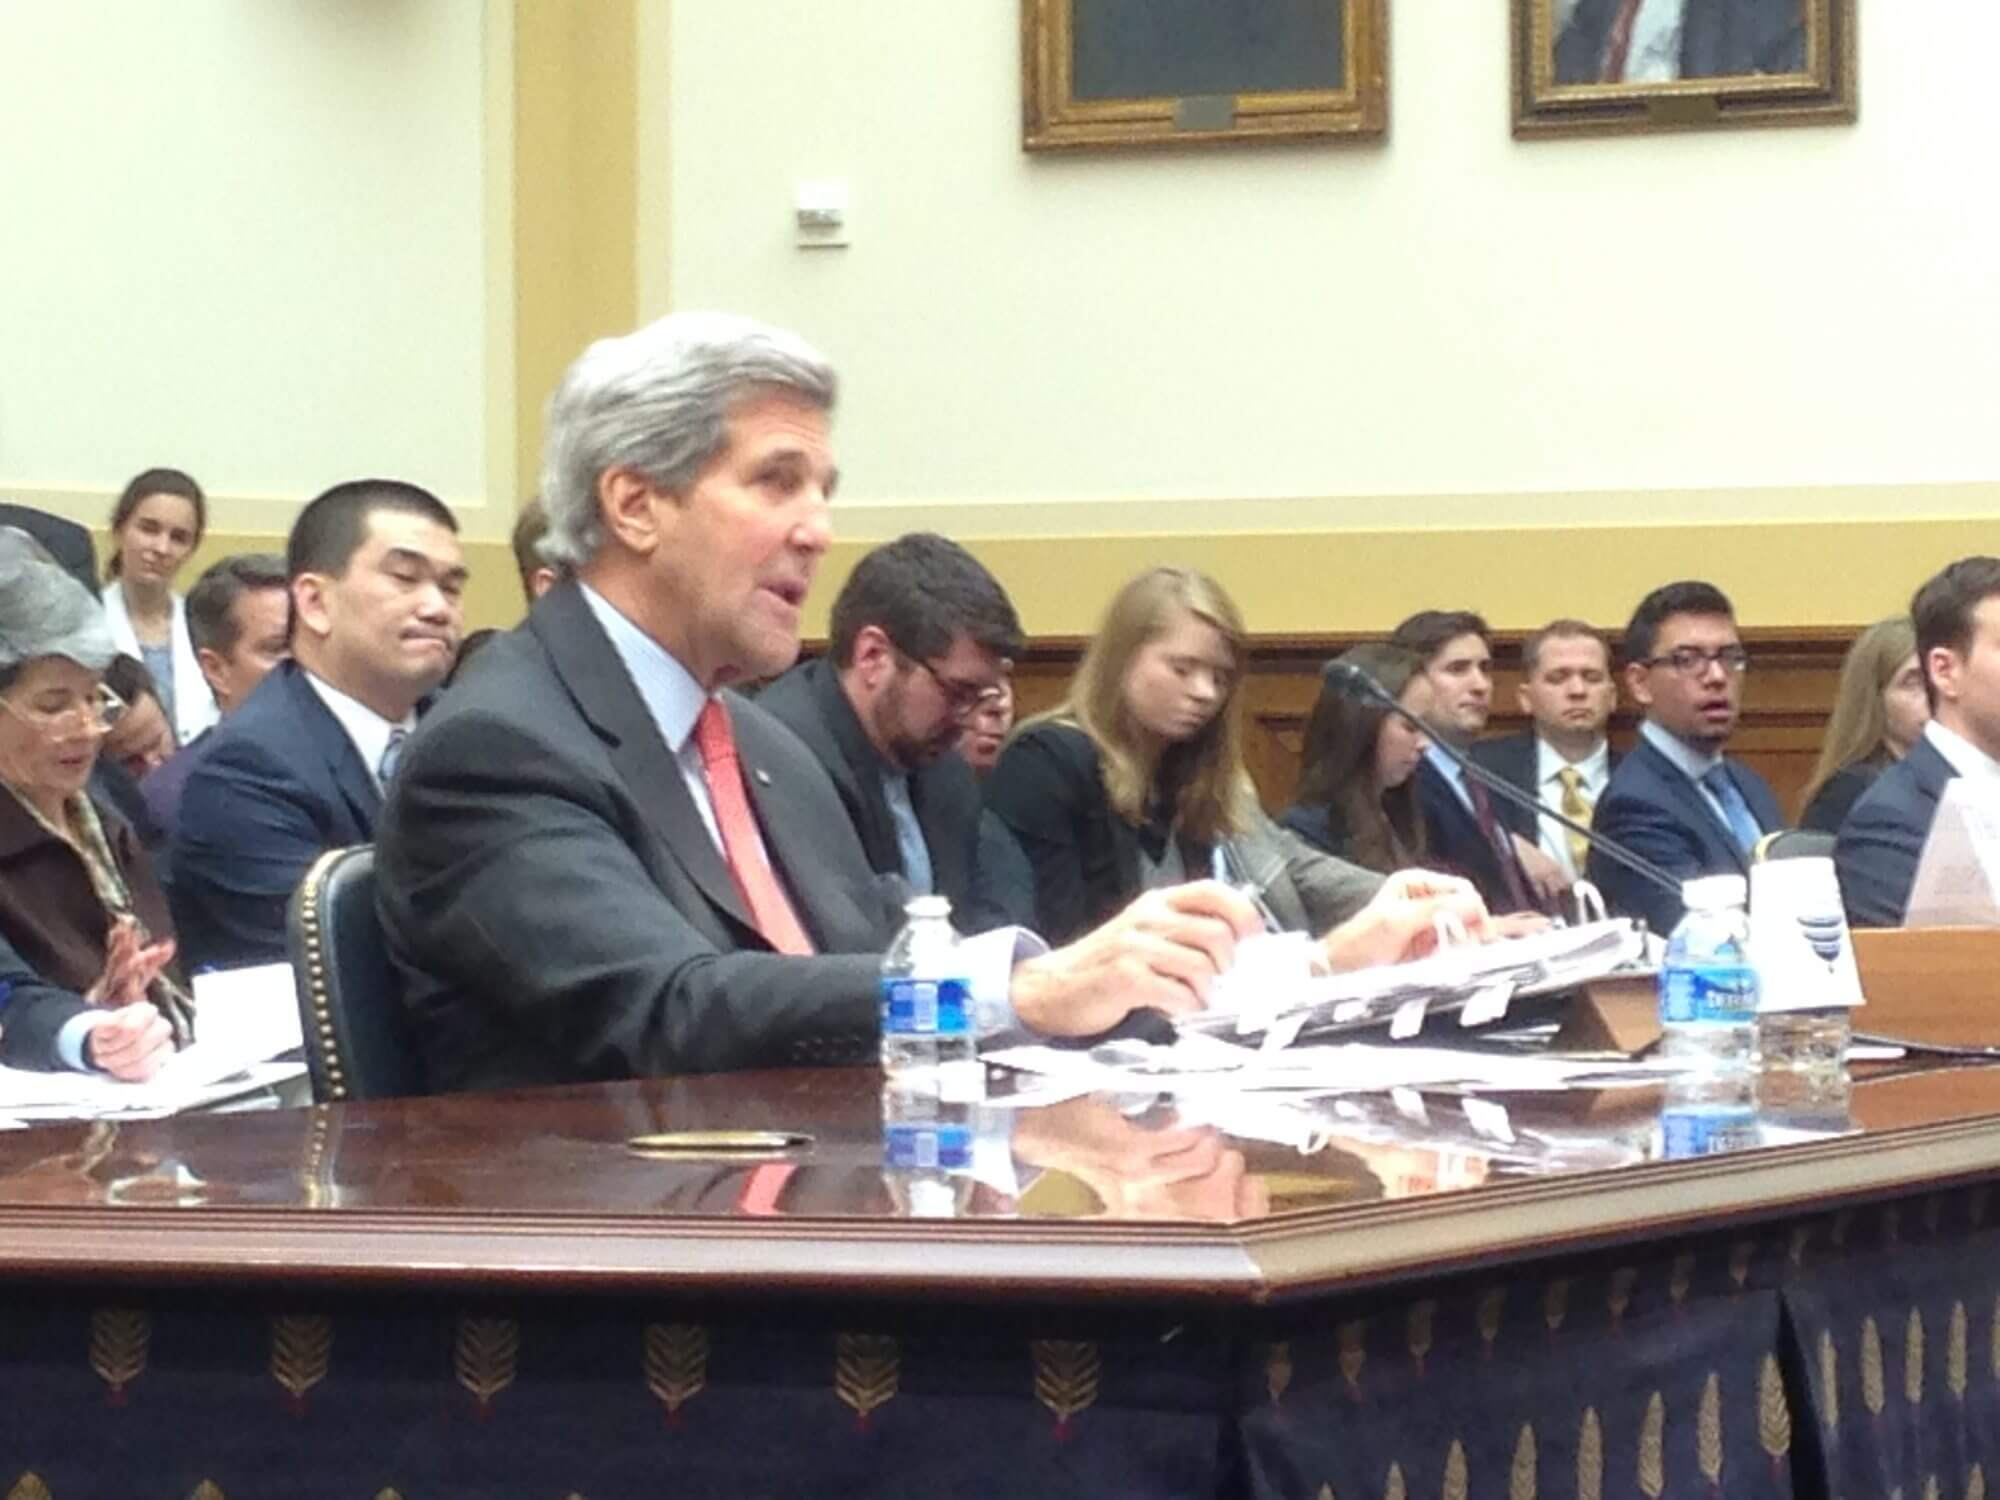 Kerry, House committee at odds over Iran negotiations